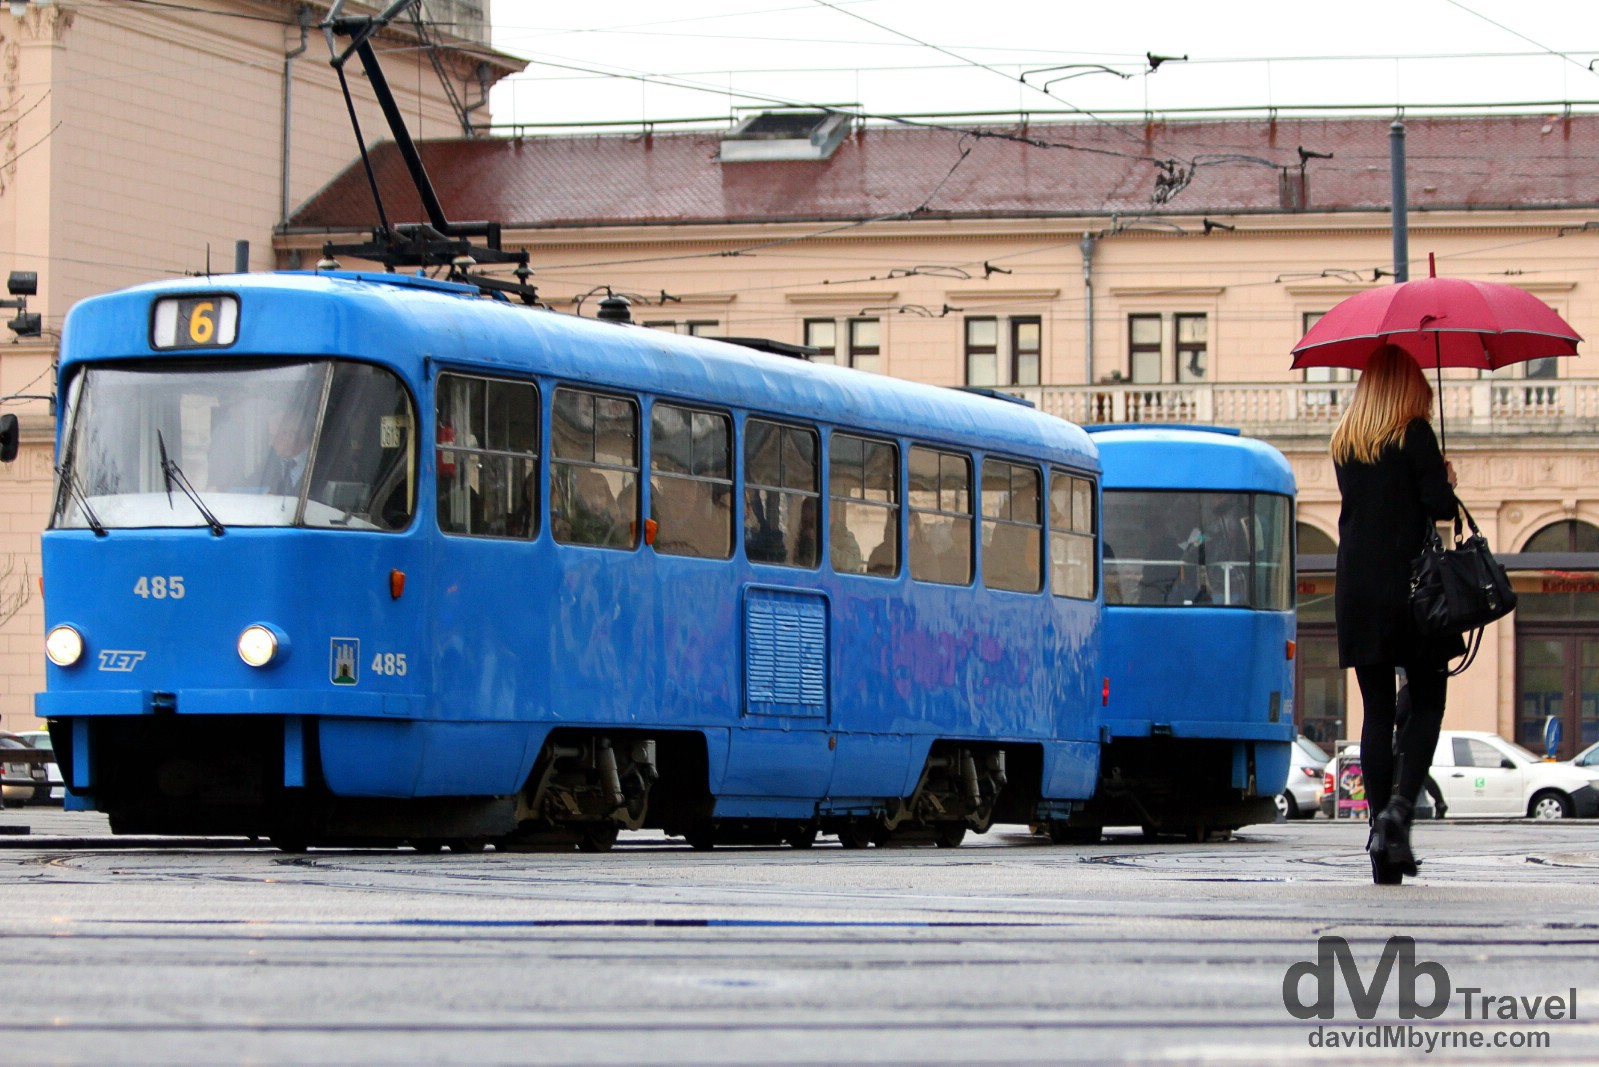 The number 6 tram outside the main railway station in Zagreb, Croatia. March 24th, 2014.